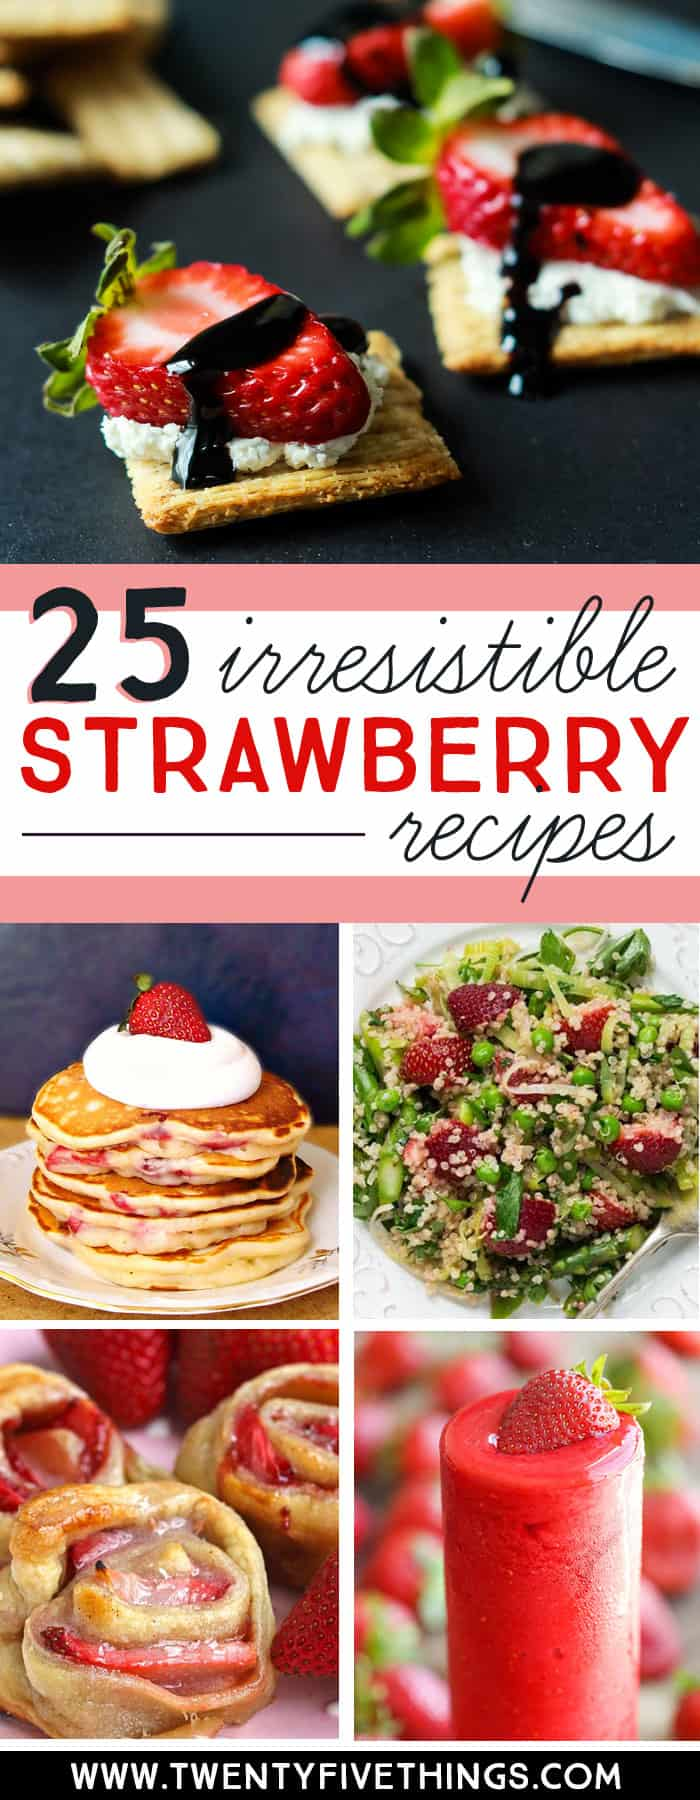 So many delicious strawberry recipes to choose from this strawberry season. Click through to see a ton of ways to use up your strawberry haul. #StrawberryRecipes